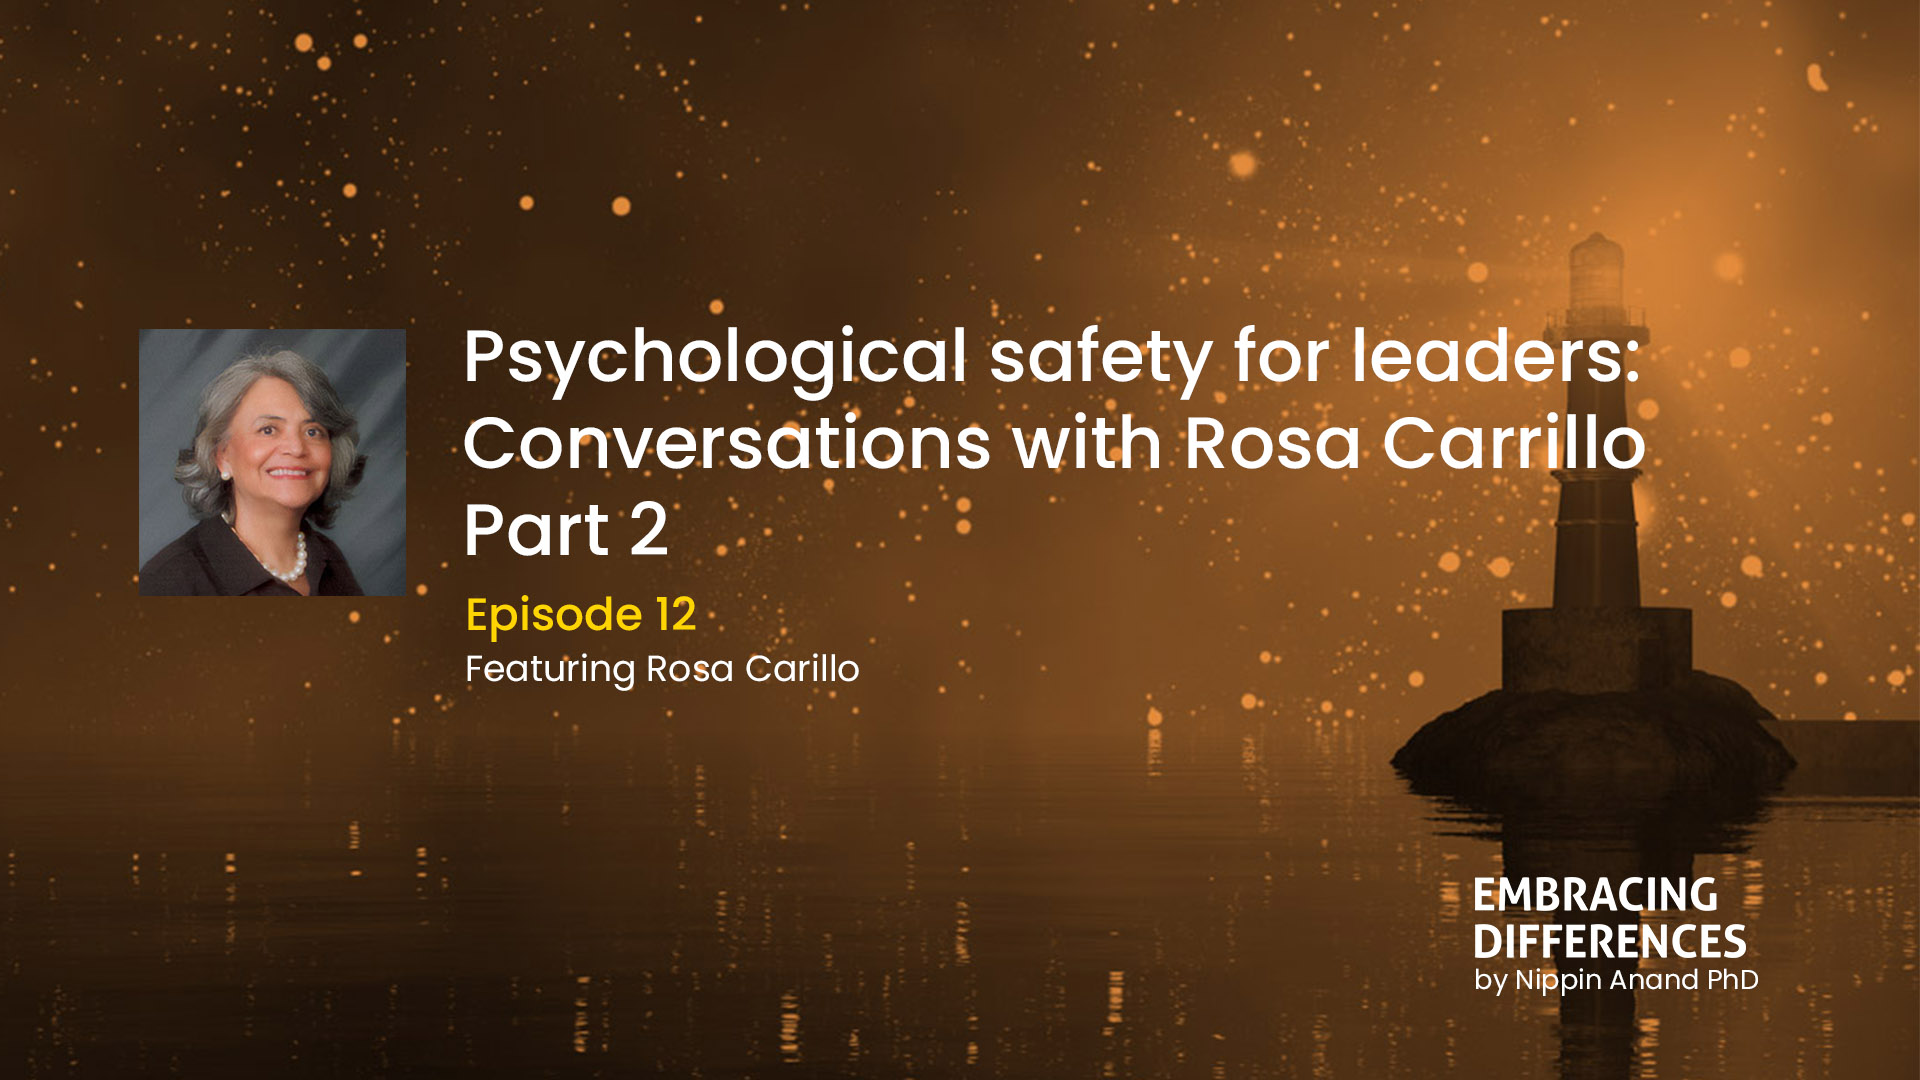 Psychological safety for leaders: Conversations with Rosa Carrillo (part 2)